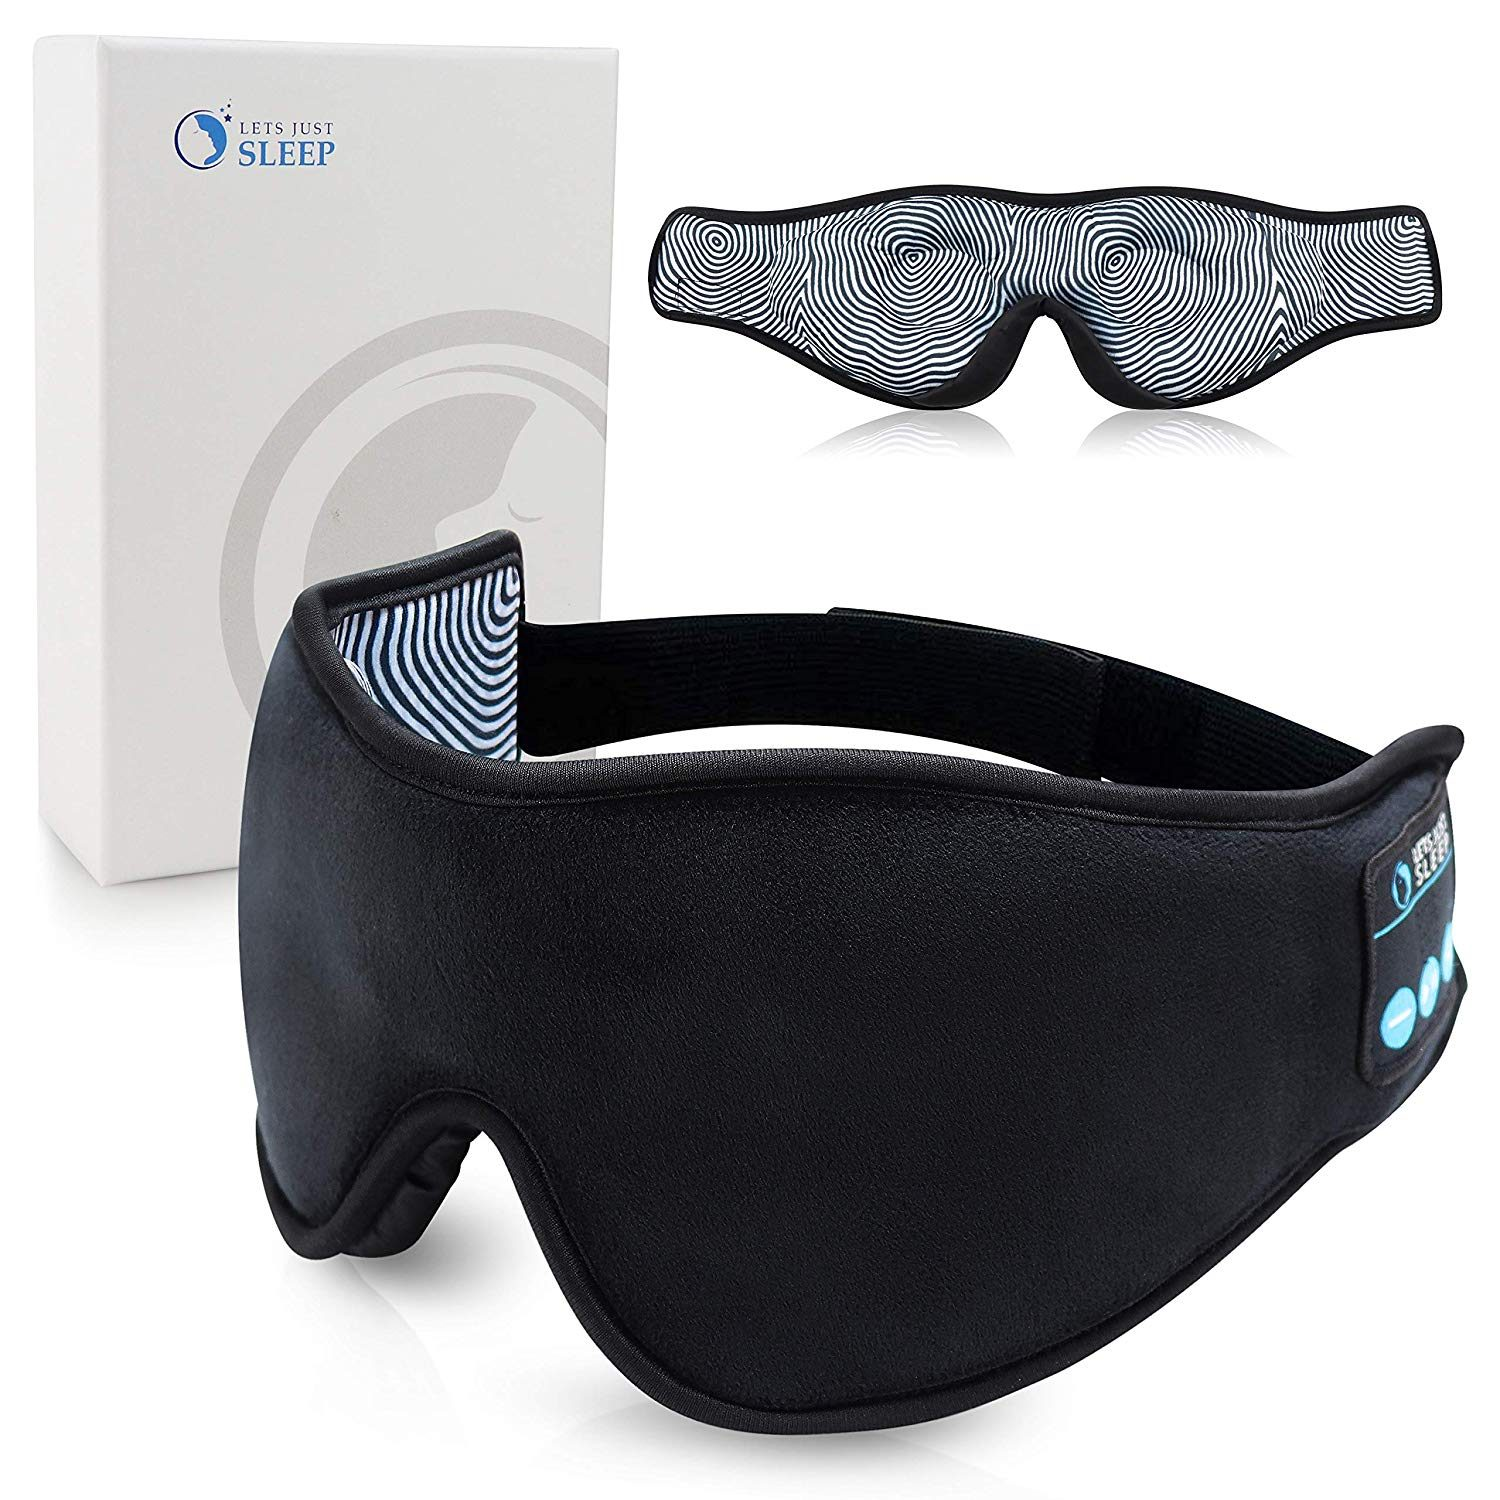 sleep mask and speakers